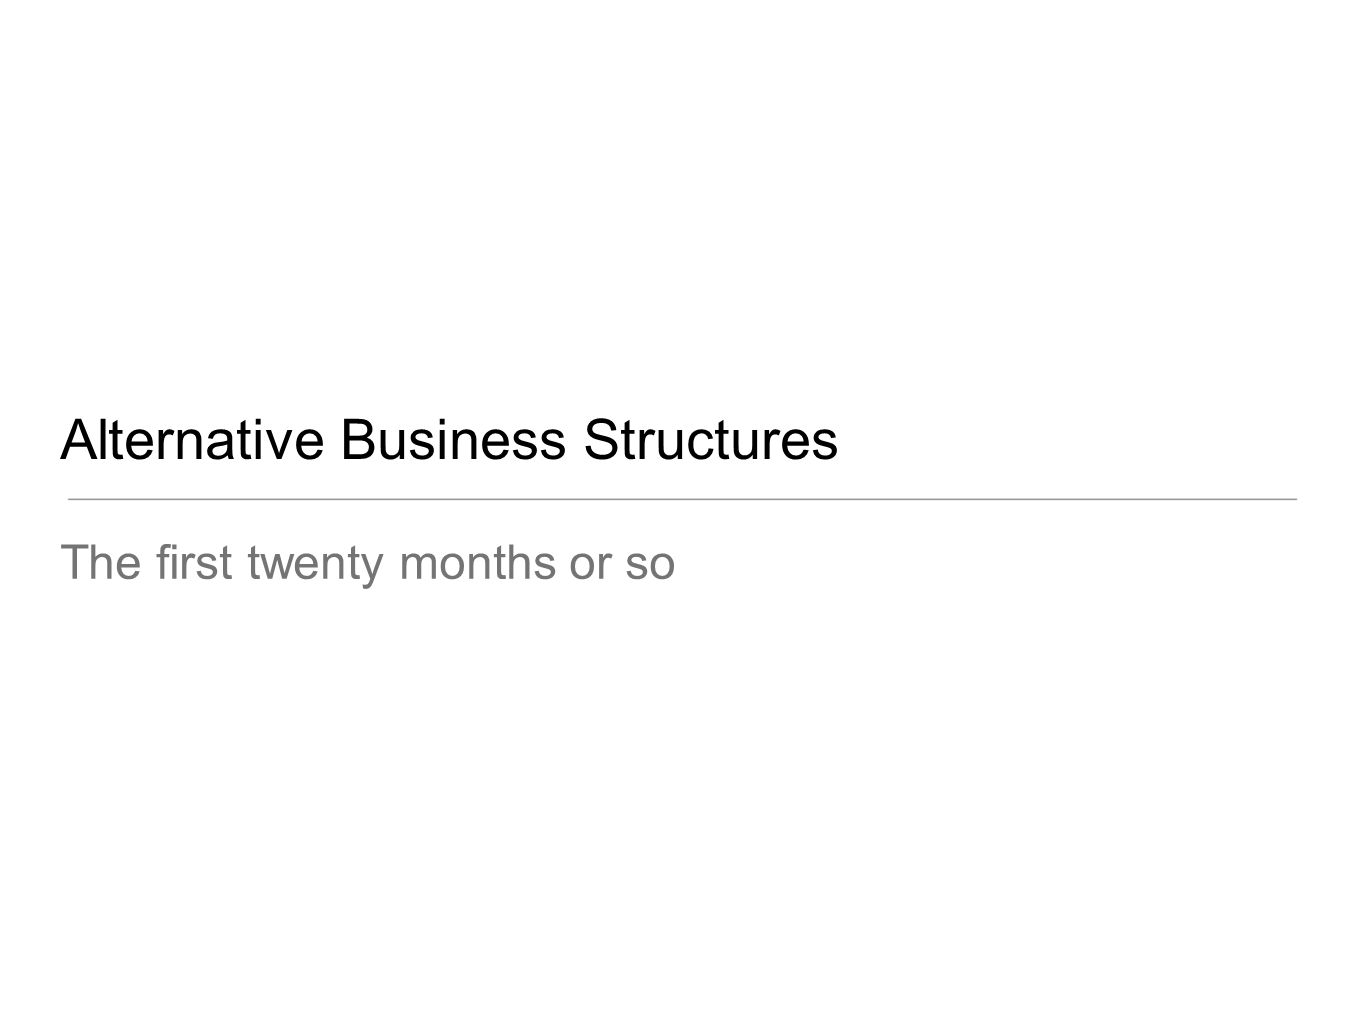 Alternative Business Structures The first twenty months or so